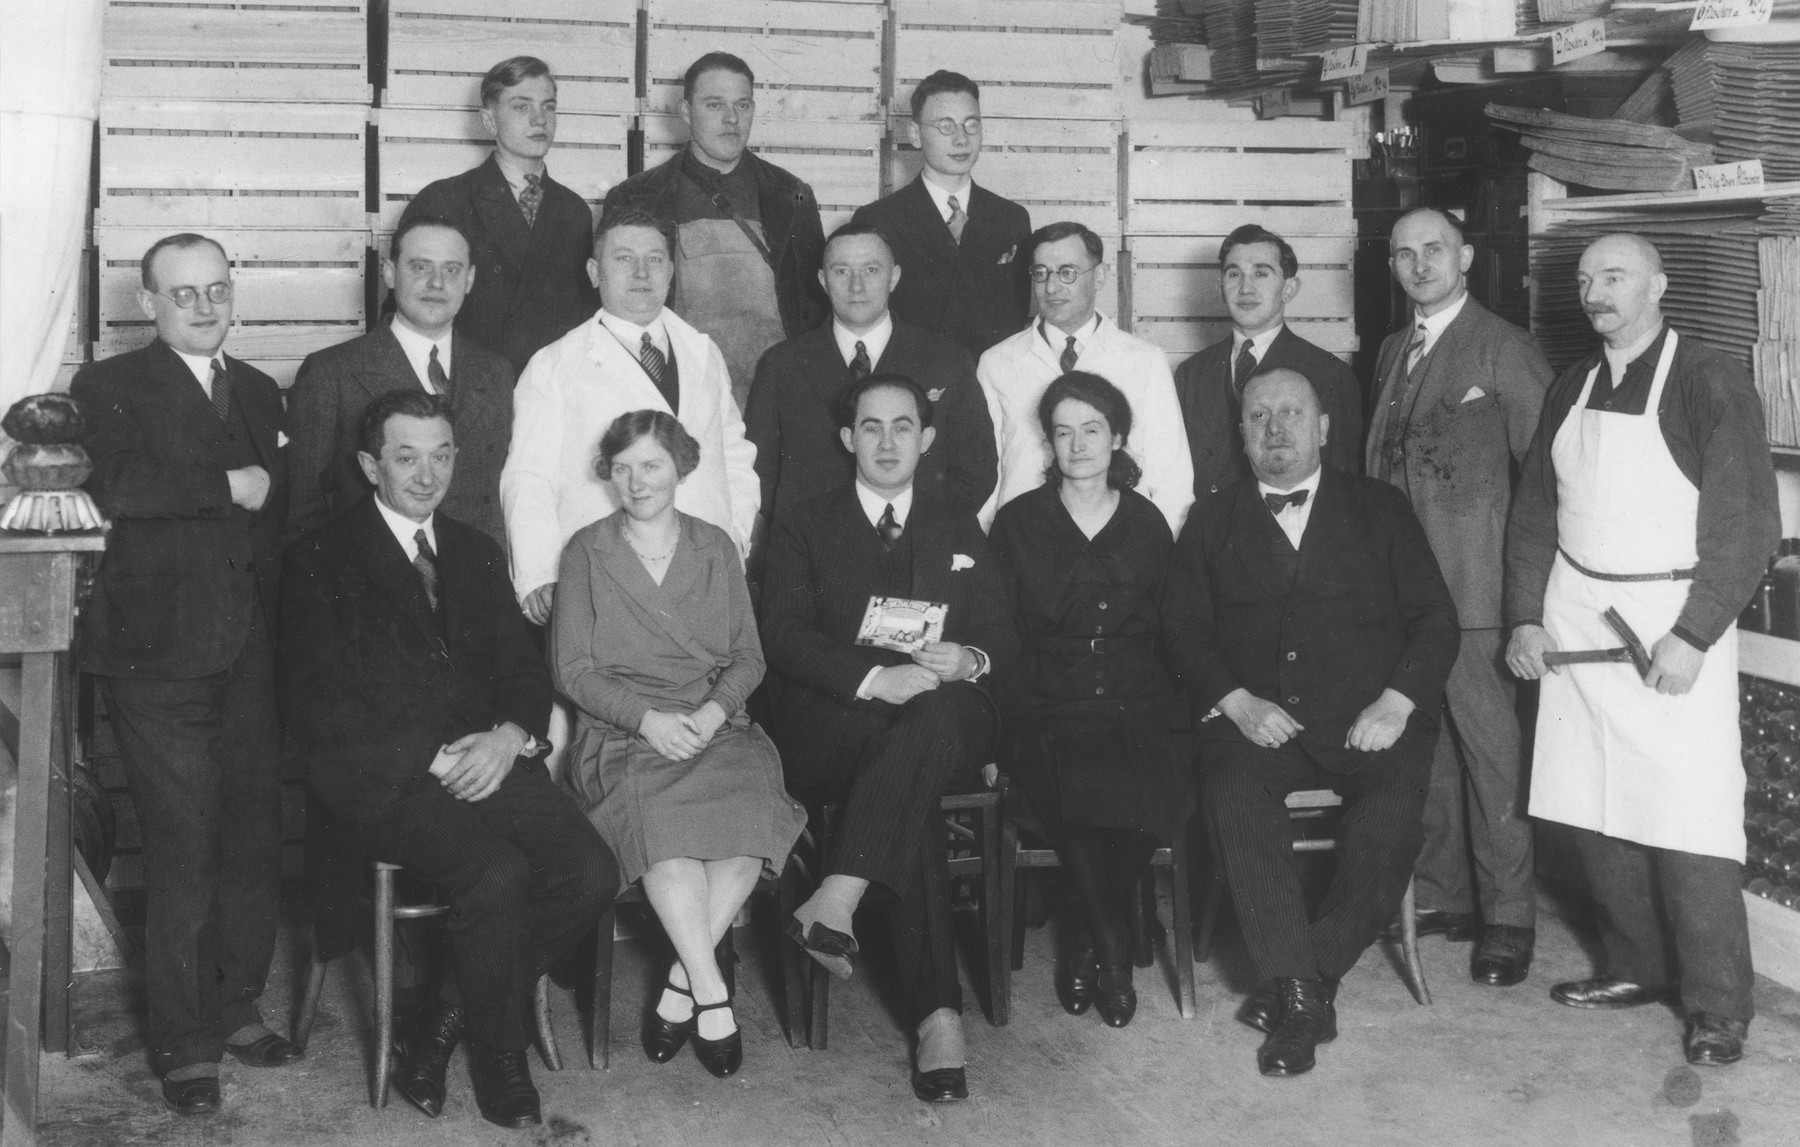 Group portrait of the employees of a business where Cecil Gelbart worked as a chemist.  Cecil Gelbart is standing in the middle row, fourth from the right.